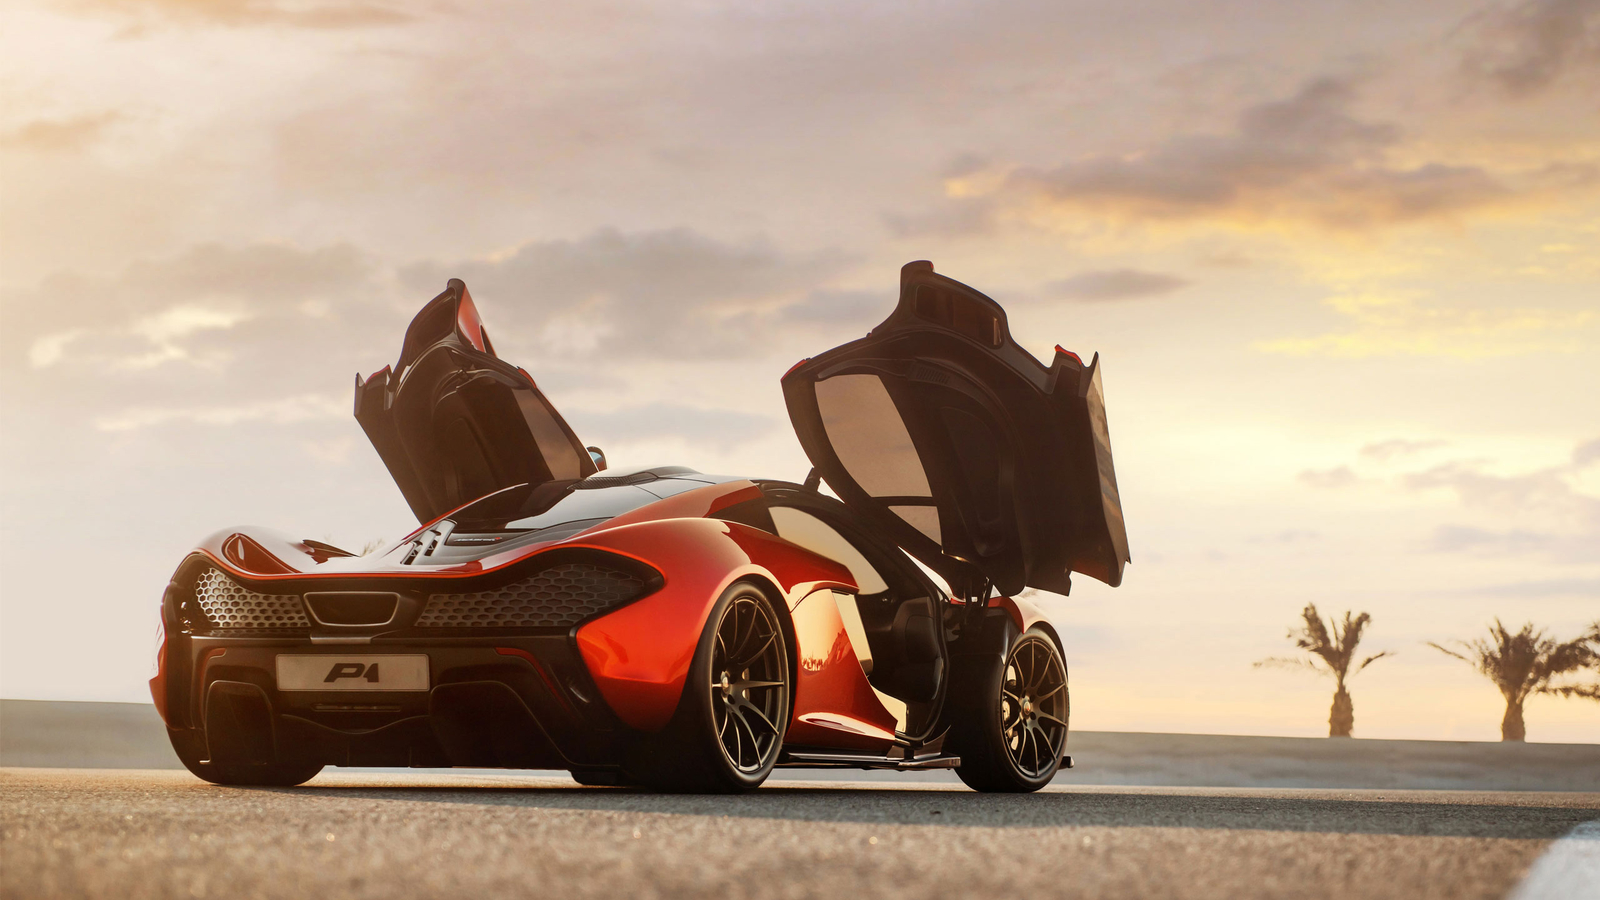 McLaren supercar wallpaper download 49720